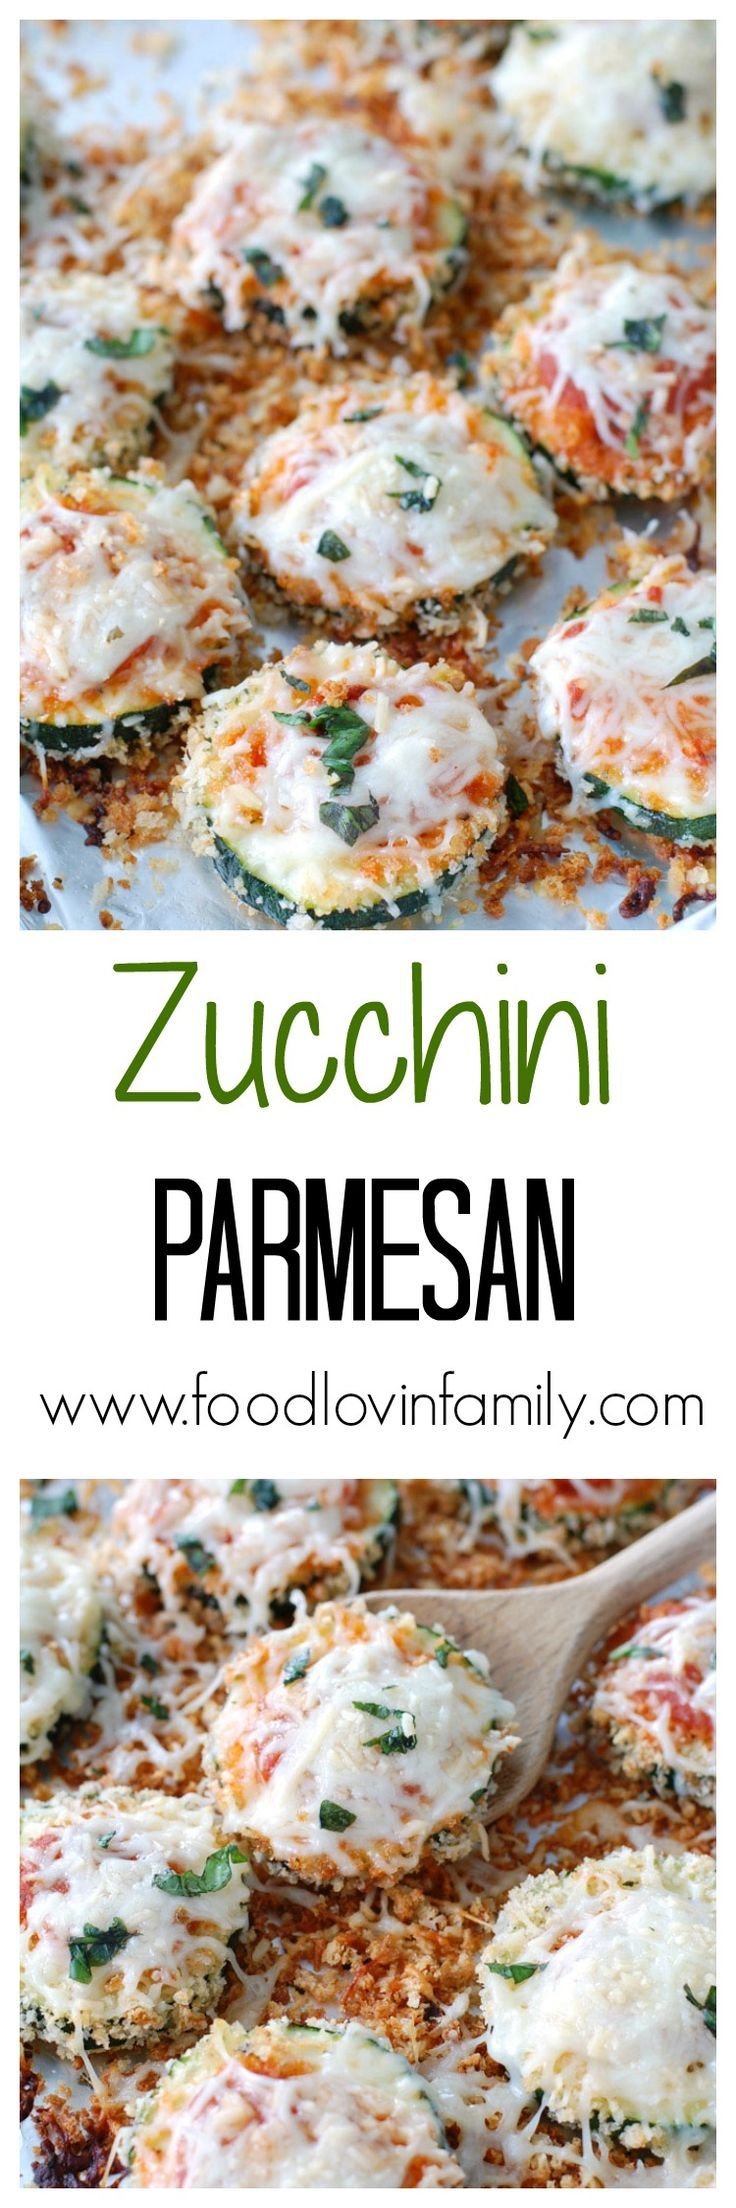 ZUCCHINI PARMESAN IS A GREAT WAY TO USE LEFTOVER ZUCCHINIS AND MAKES A PERFECT MEATLESS MONDAY MEAL. | http://www.foodlovinfamily.com/zucchini-parmesan/